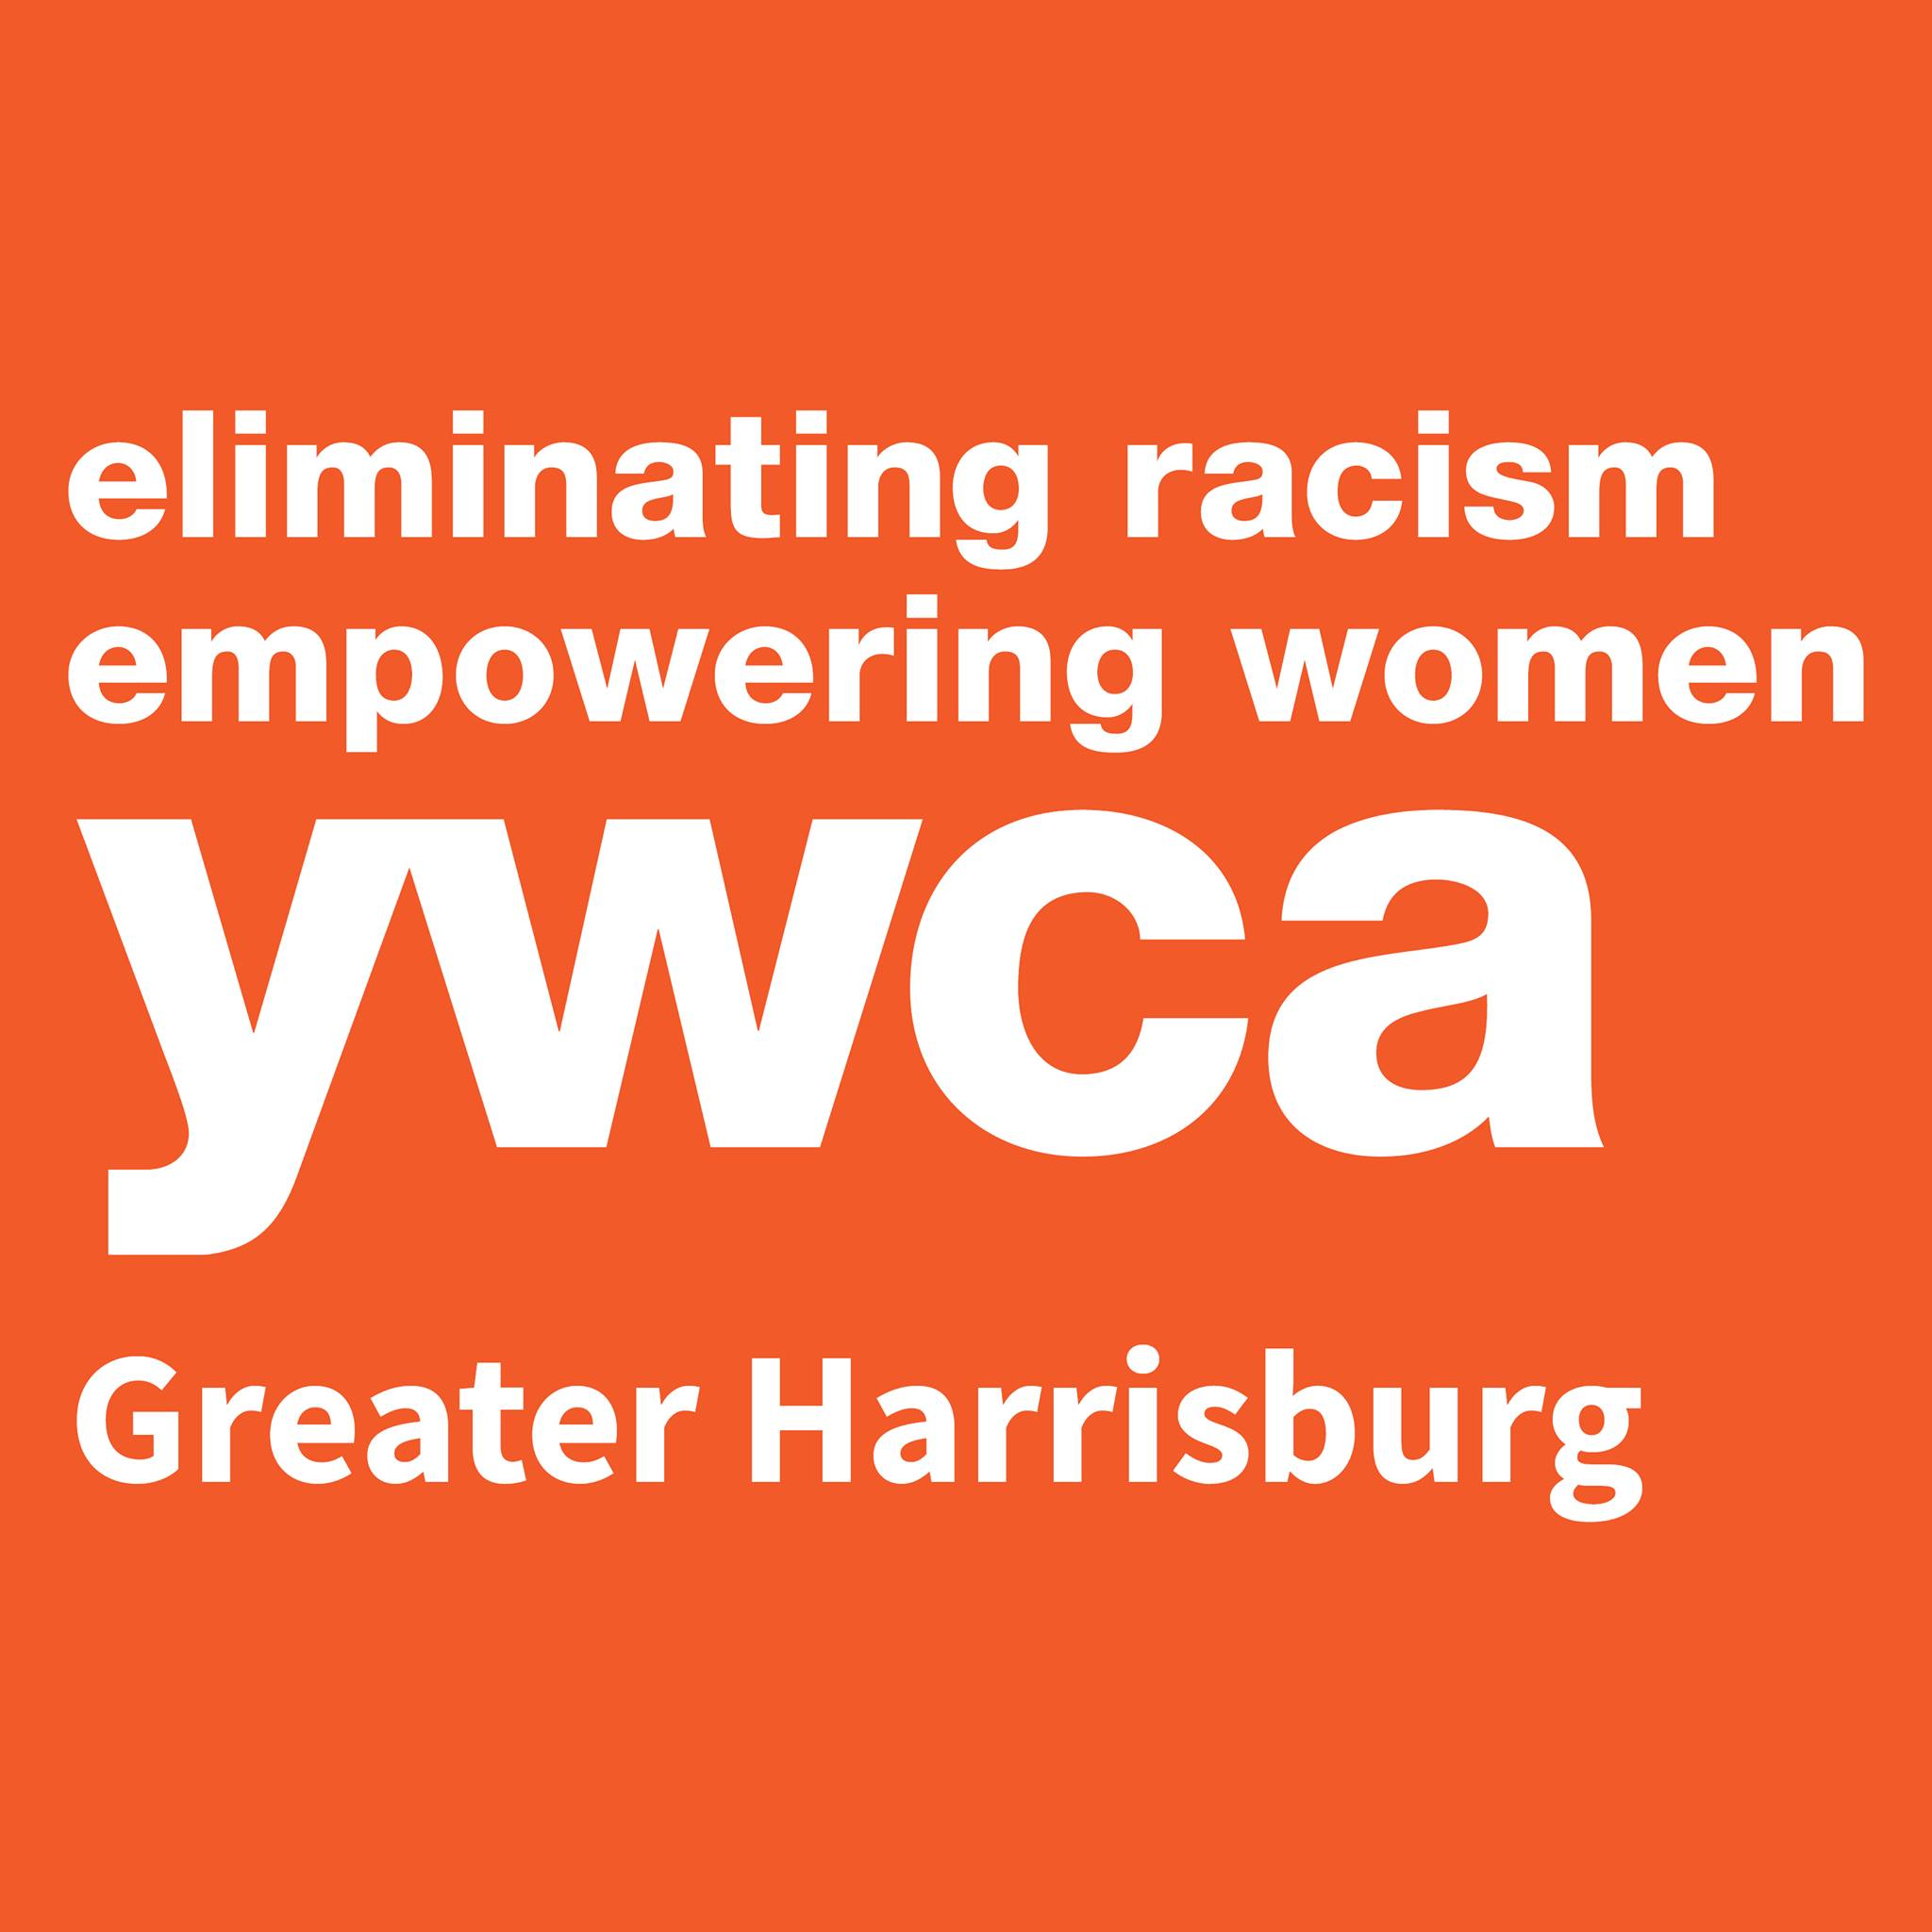 YWCA Emergency Shelter - Harrisburg